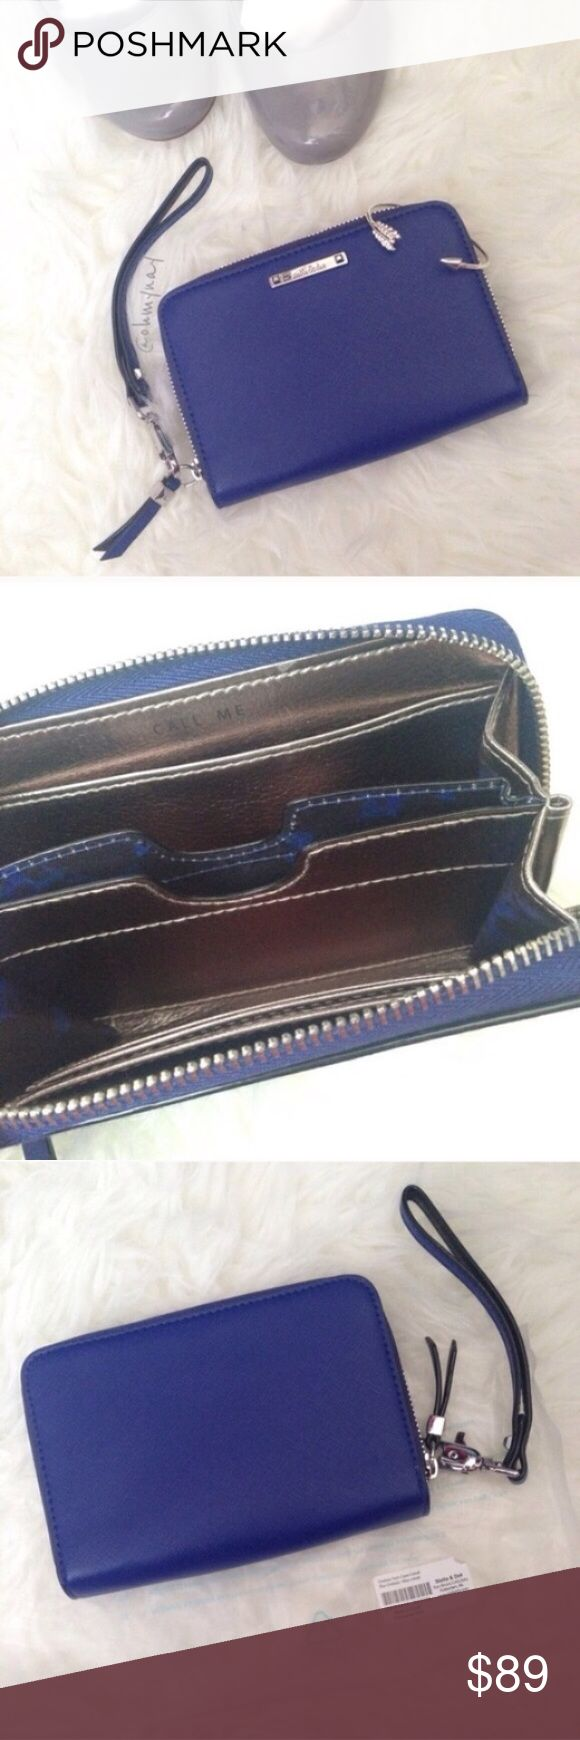 "Stella & Dot • Cobalt Blue Chelsea Tech Wallet Tech-friendly wallet for everyday use. Holds your phone, cash, and cards. Features zip-around closure, signature clover lining and removable wristlet.     • Ori. $59 RETIRED & SOLD OUT • Measures: 6"" x 1.5"" x 4""   • Genuine saffiano leather • Cobalt Blue    💕 Sample with original packaging. Ships from a pet/smoke home.   Free shipping available!   🌟 Love it but not the price? Use the offer button and buy it today! Stella & Dot Bags Wallets"